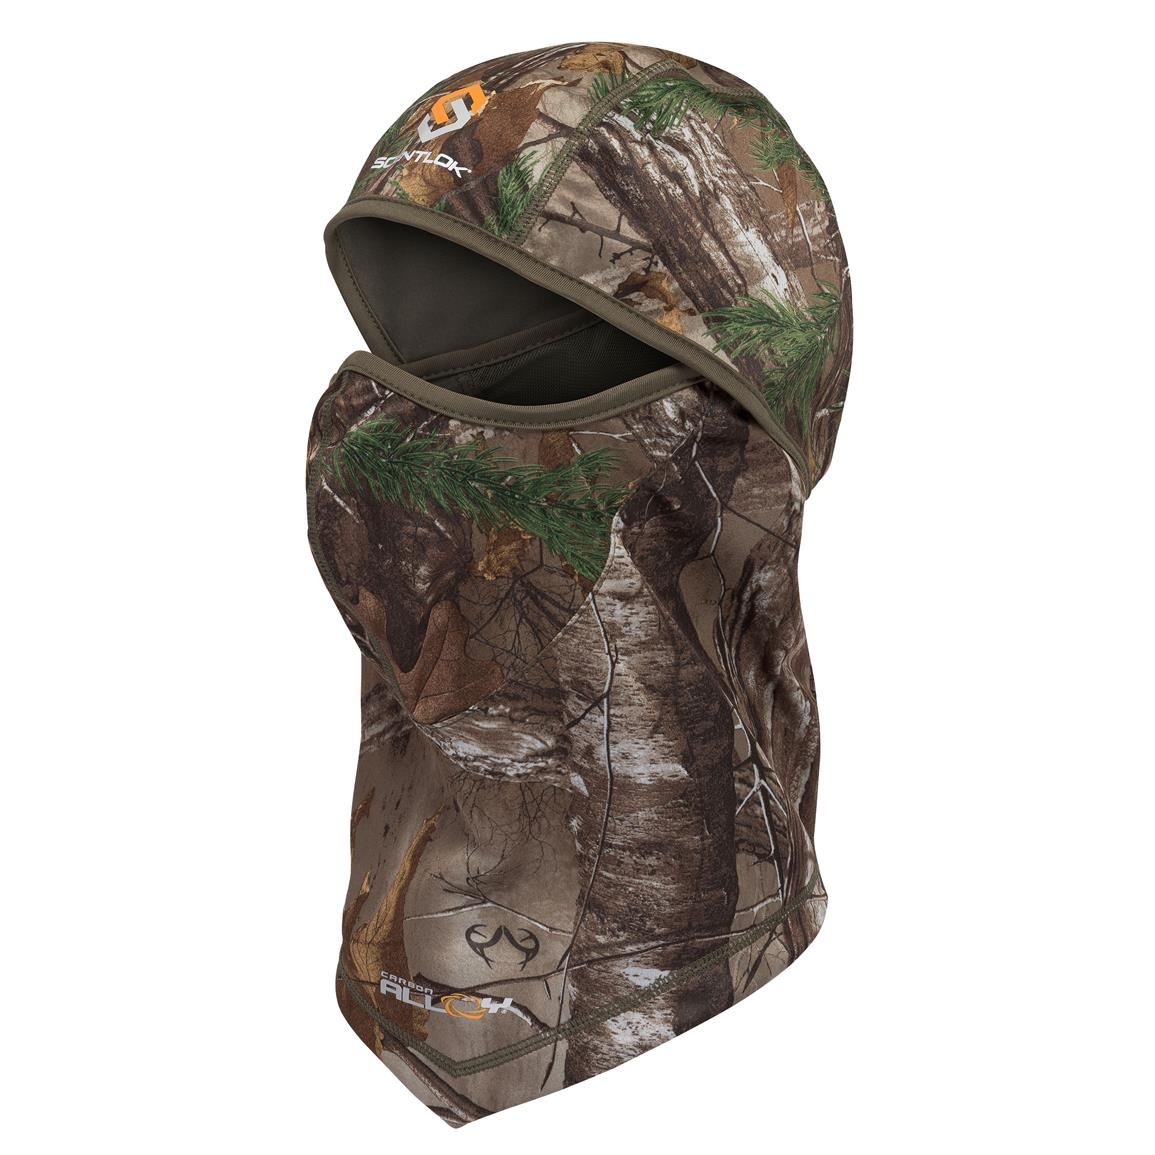 Scentlok Savanna Lightweight Head Cover, Realtree Xtra